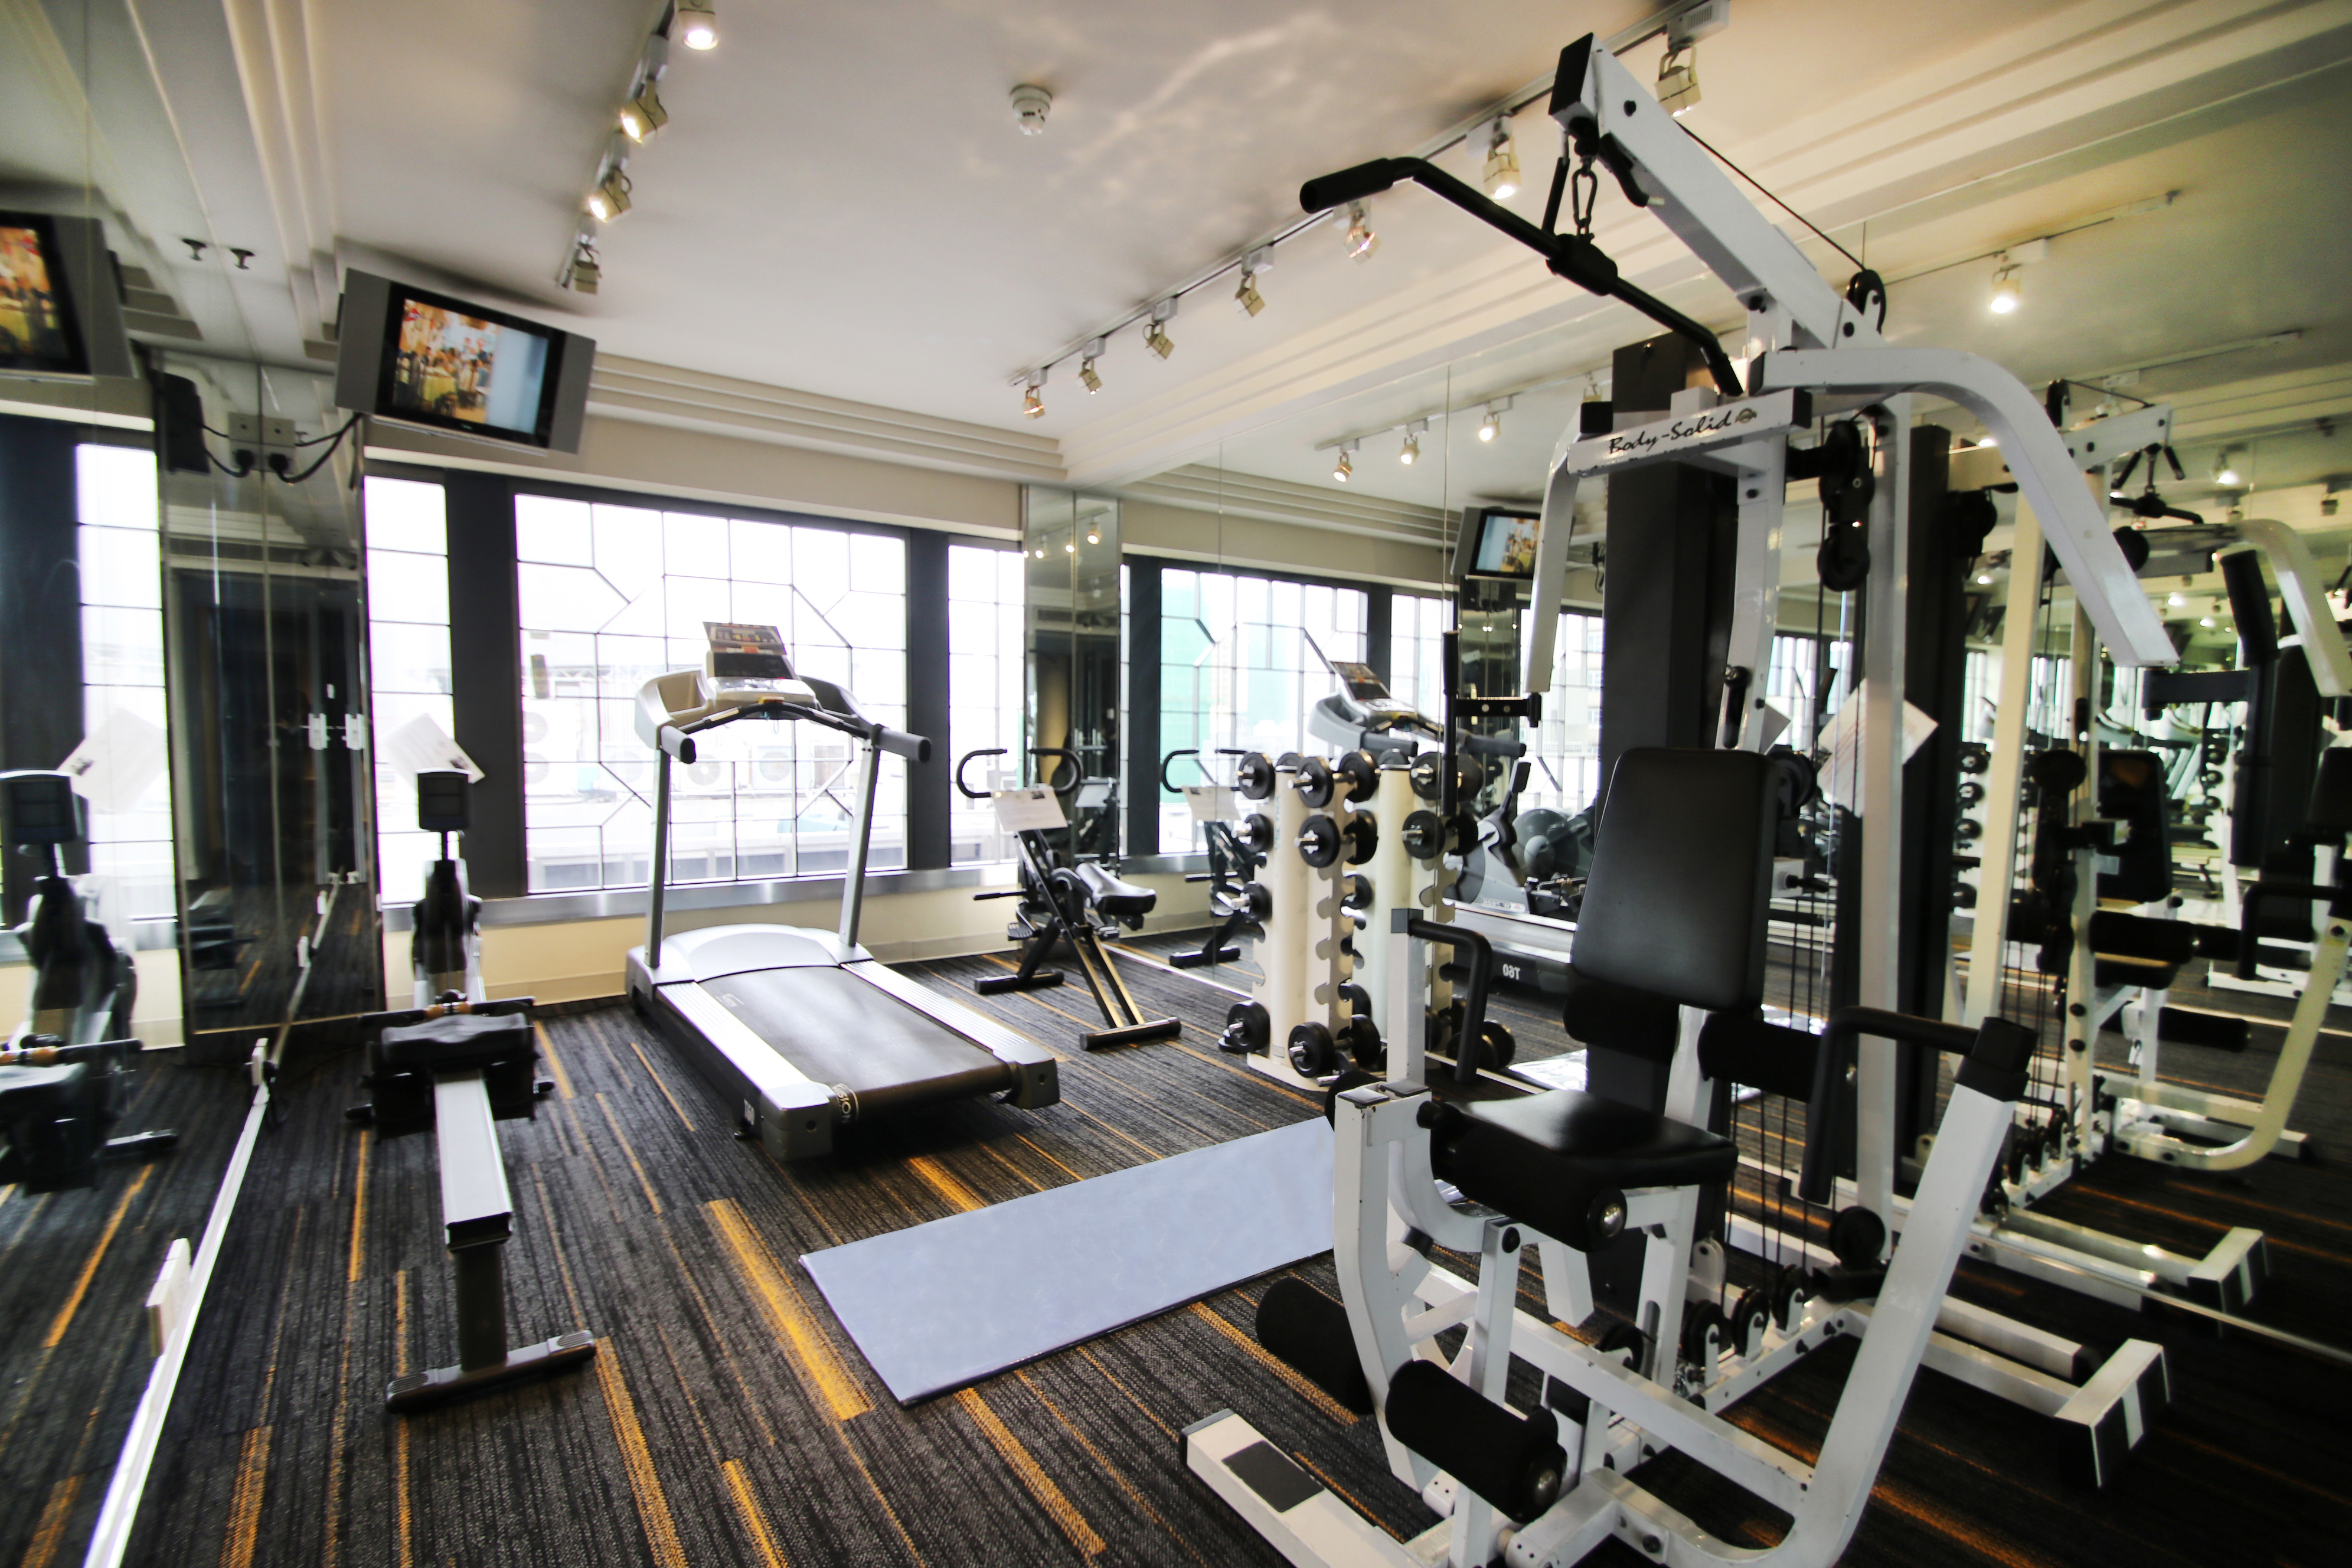 Leisure facilities hong kong hotel prudential hotel official site